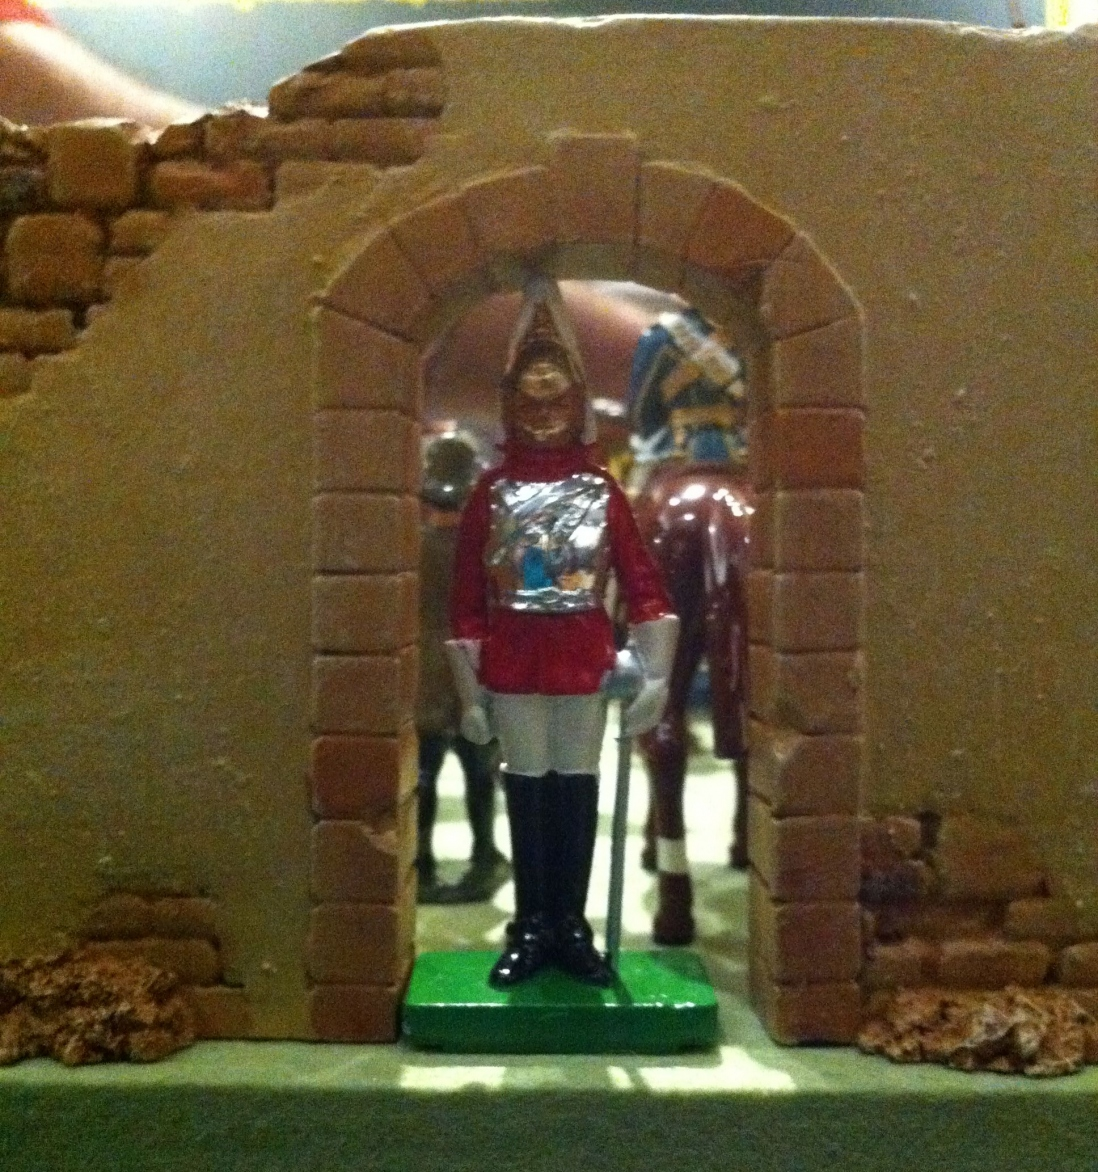 This is a detail photograph of a toy soldier standing in a doorway on guard